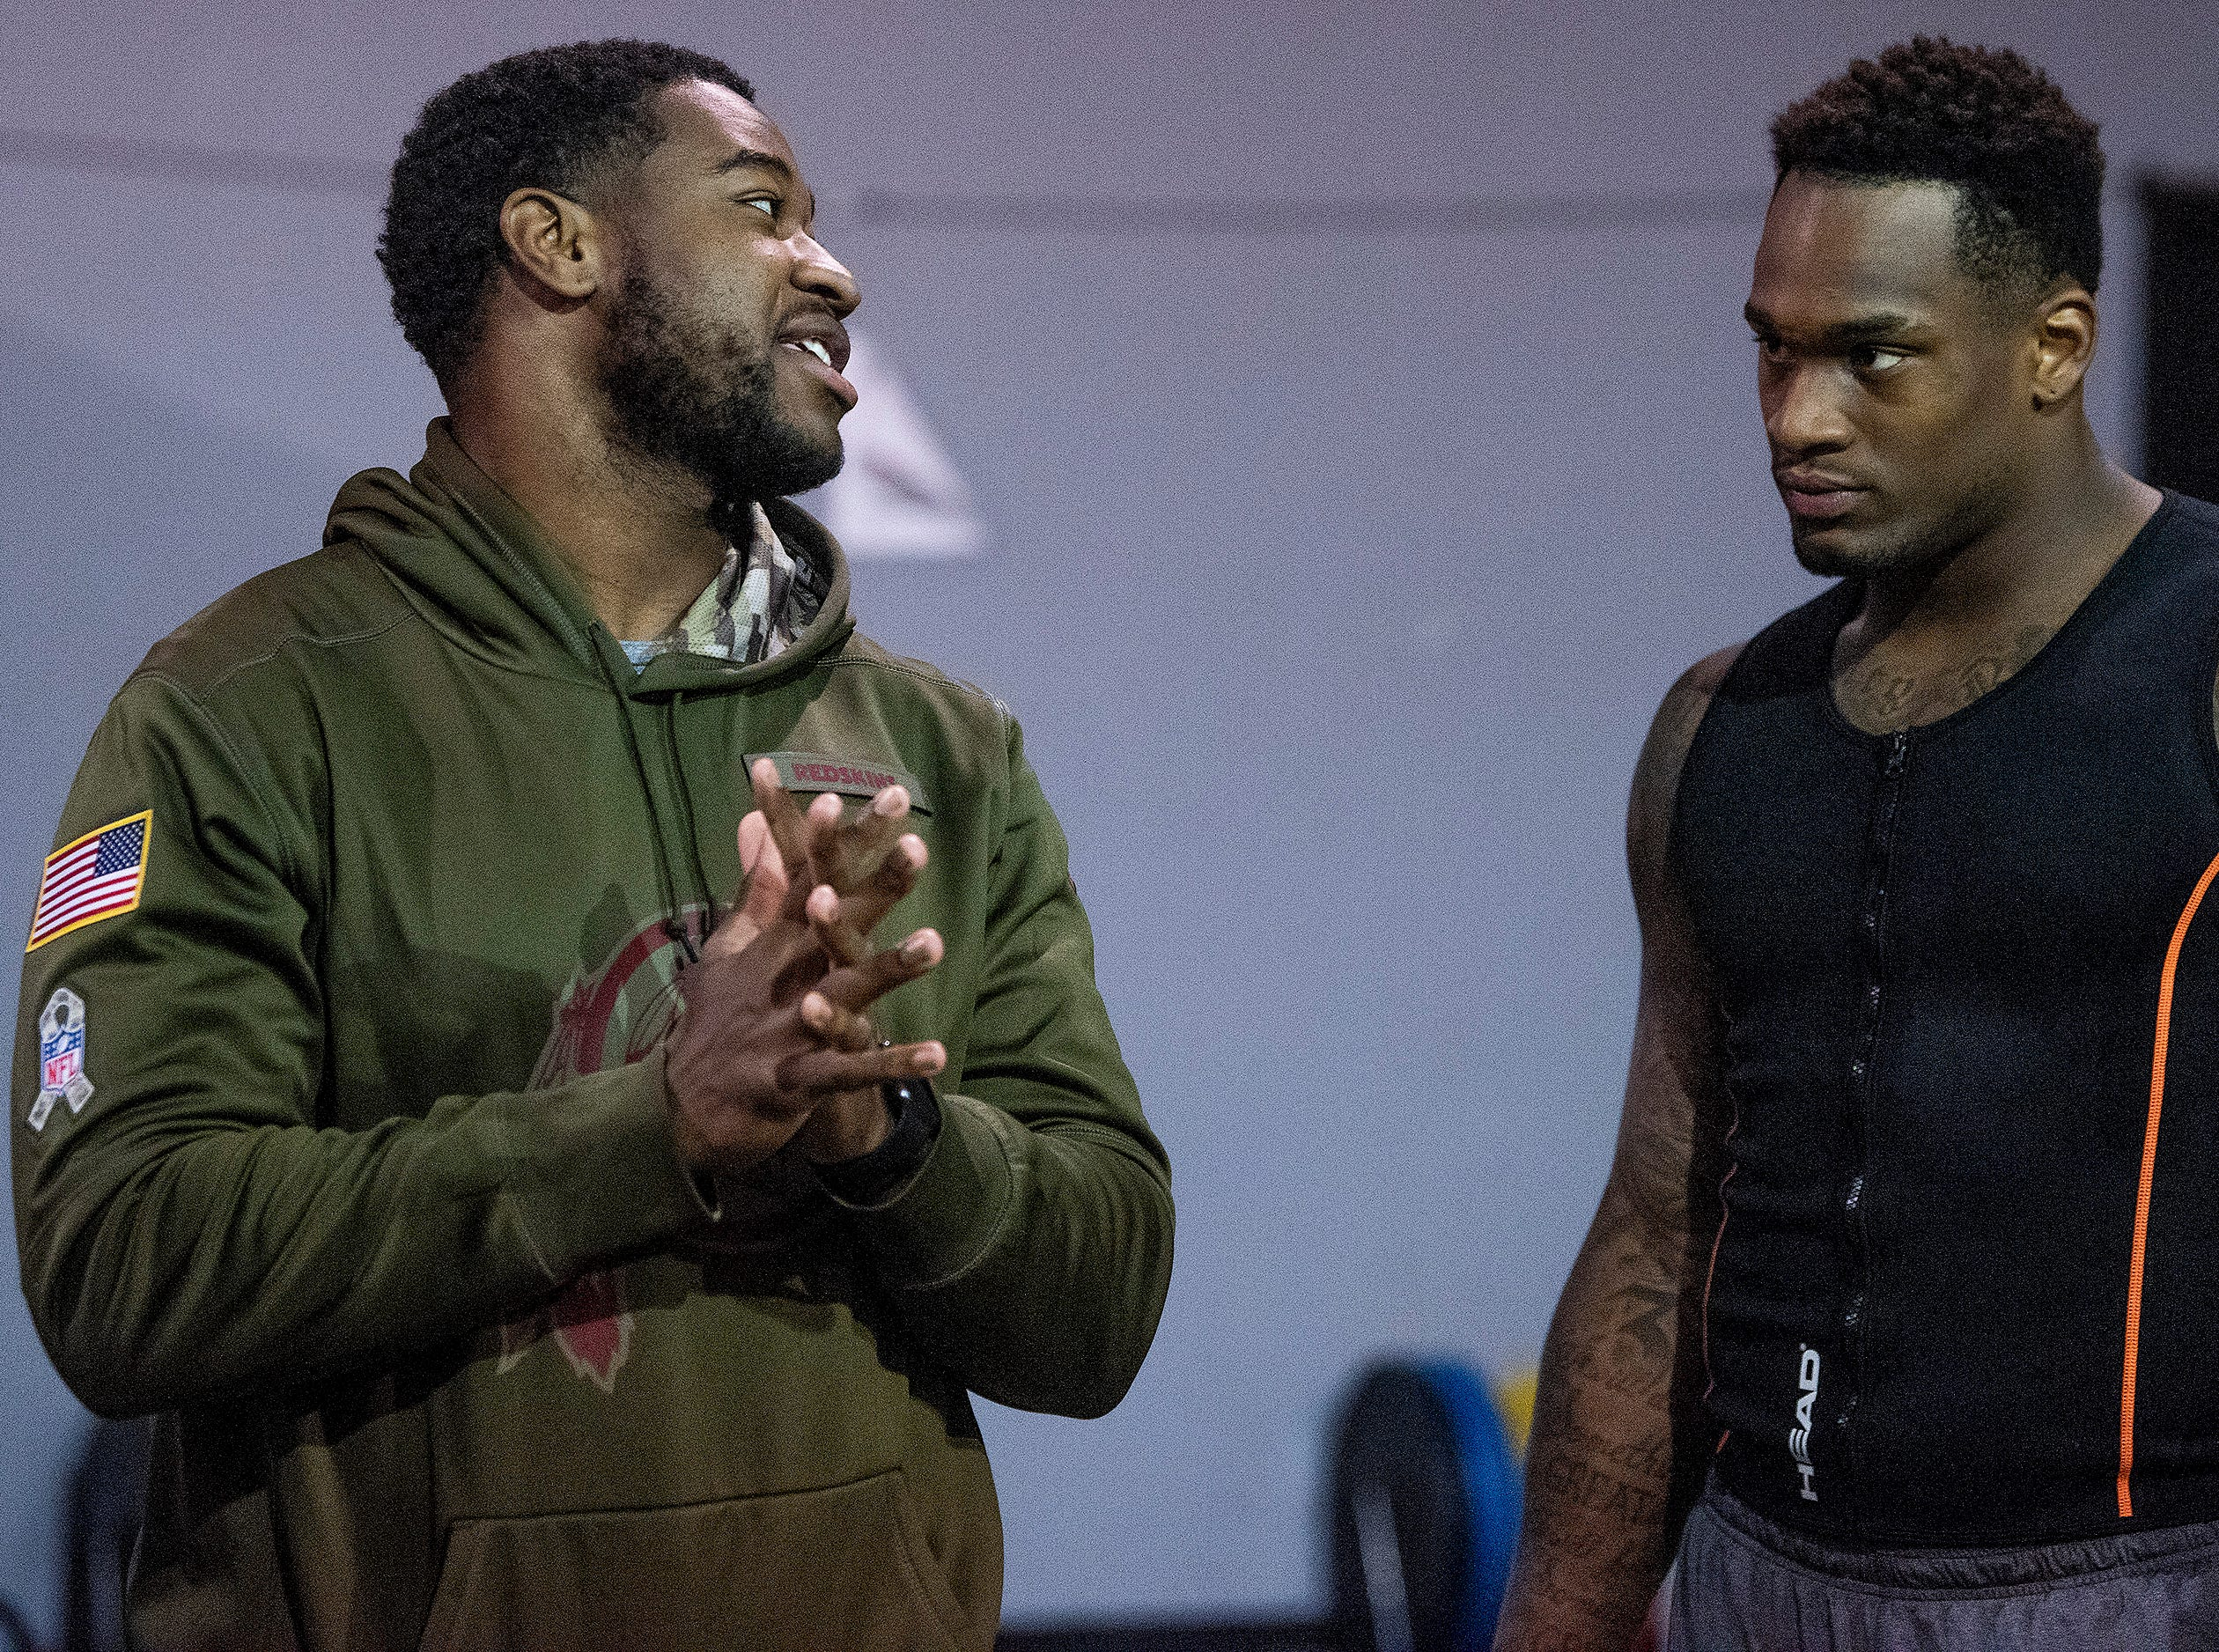 Mack Wilson talks with former teammate current NFL player Shaun Dion Hamilton as he trains for the NFL Combine at MADhouse gym in Montgomery, Ala., on Saturday February 9, 2019.